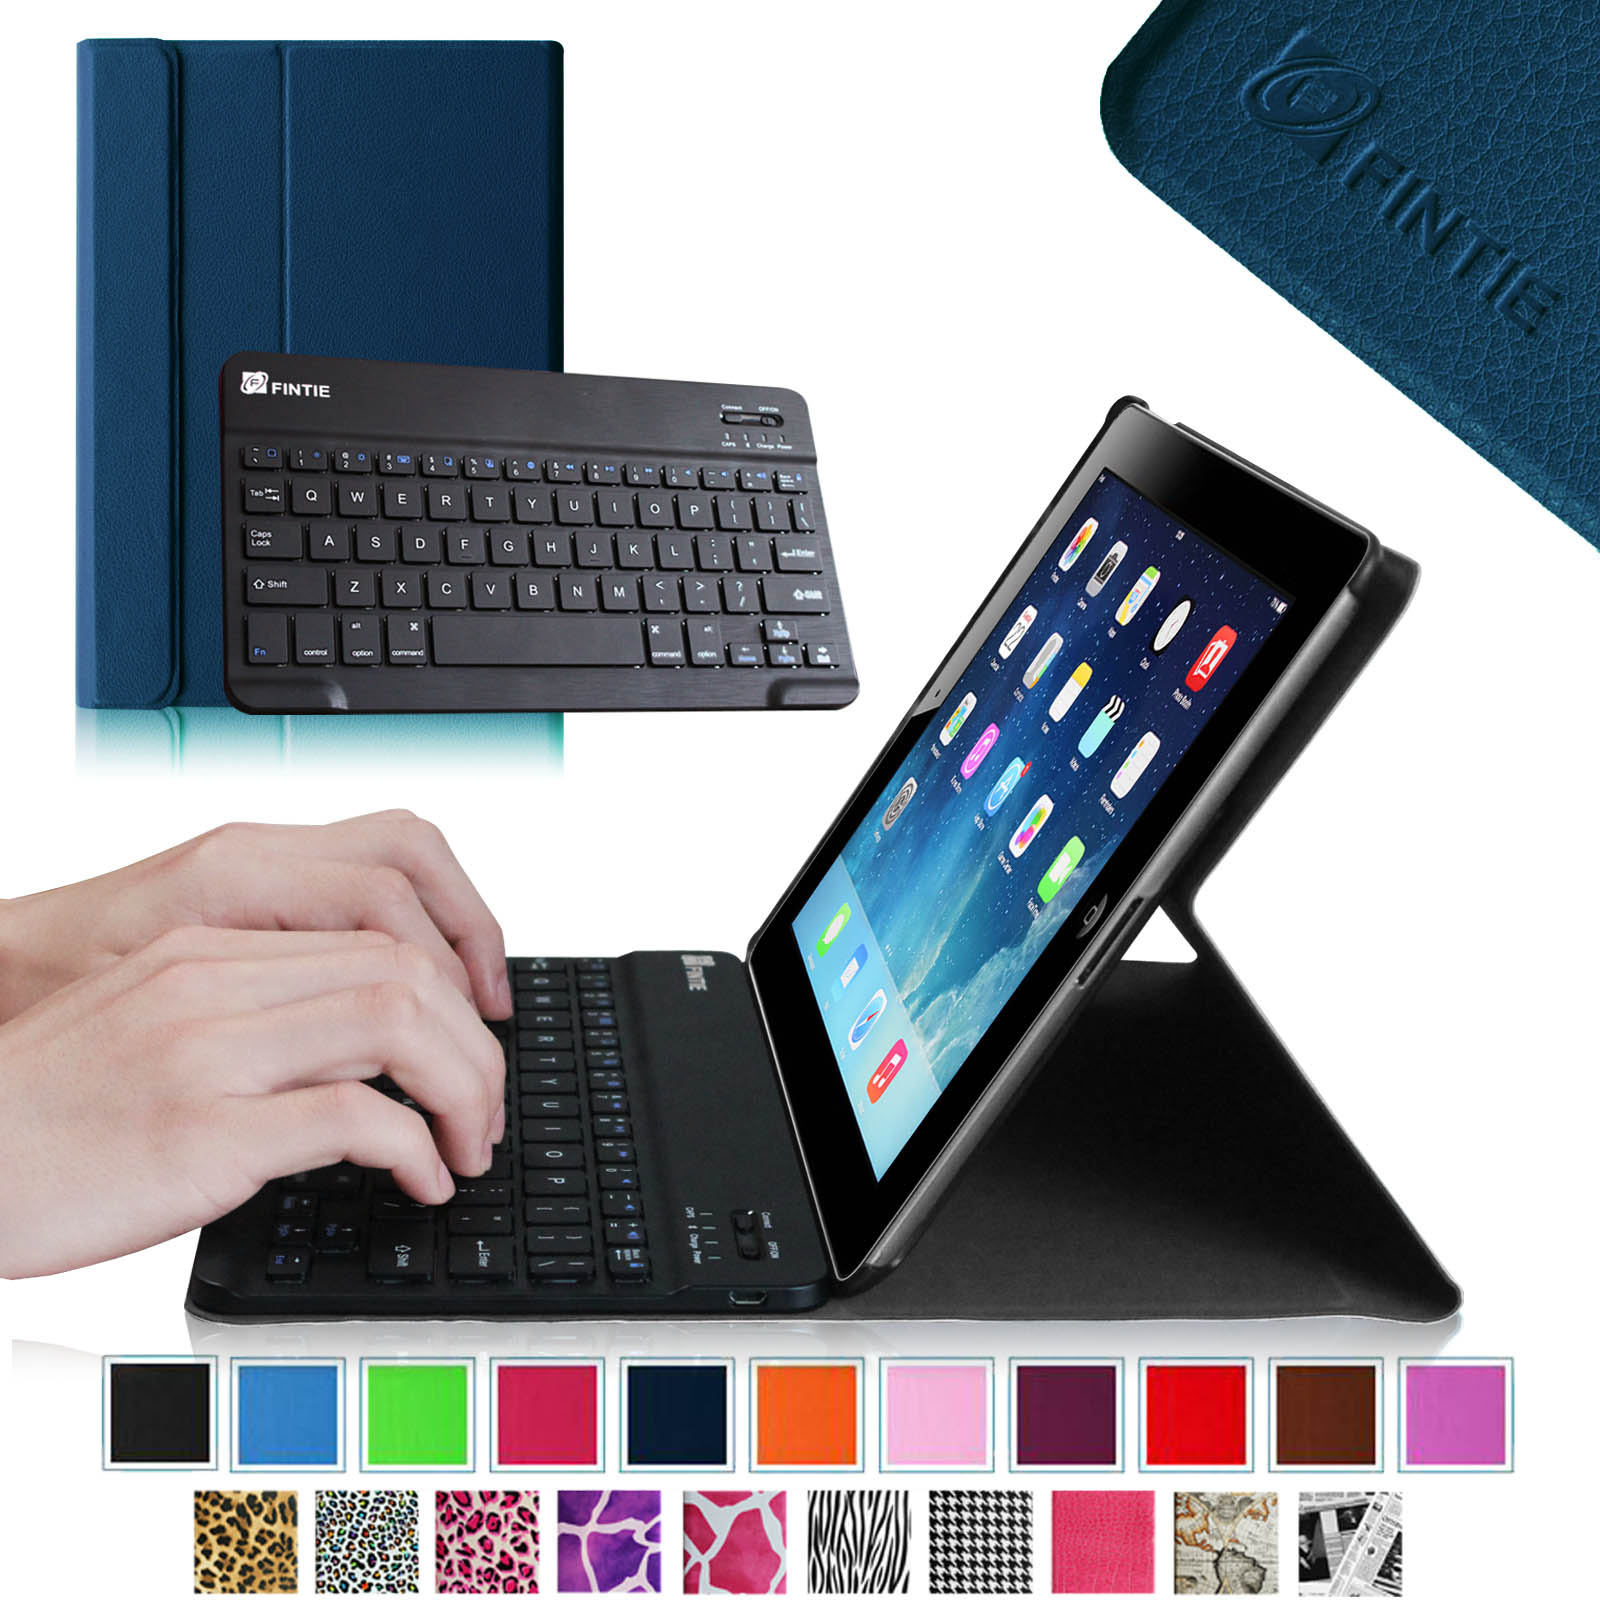 Apple iPad 4, iPad 3 & iPad 2 Keyboard Case - Fintie SlimShell Stand Cover with Detachable Bluetooth Keyboard, Navy